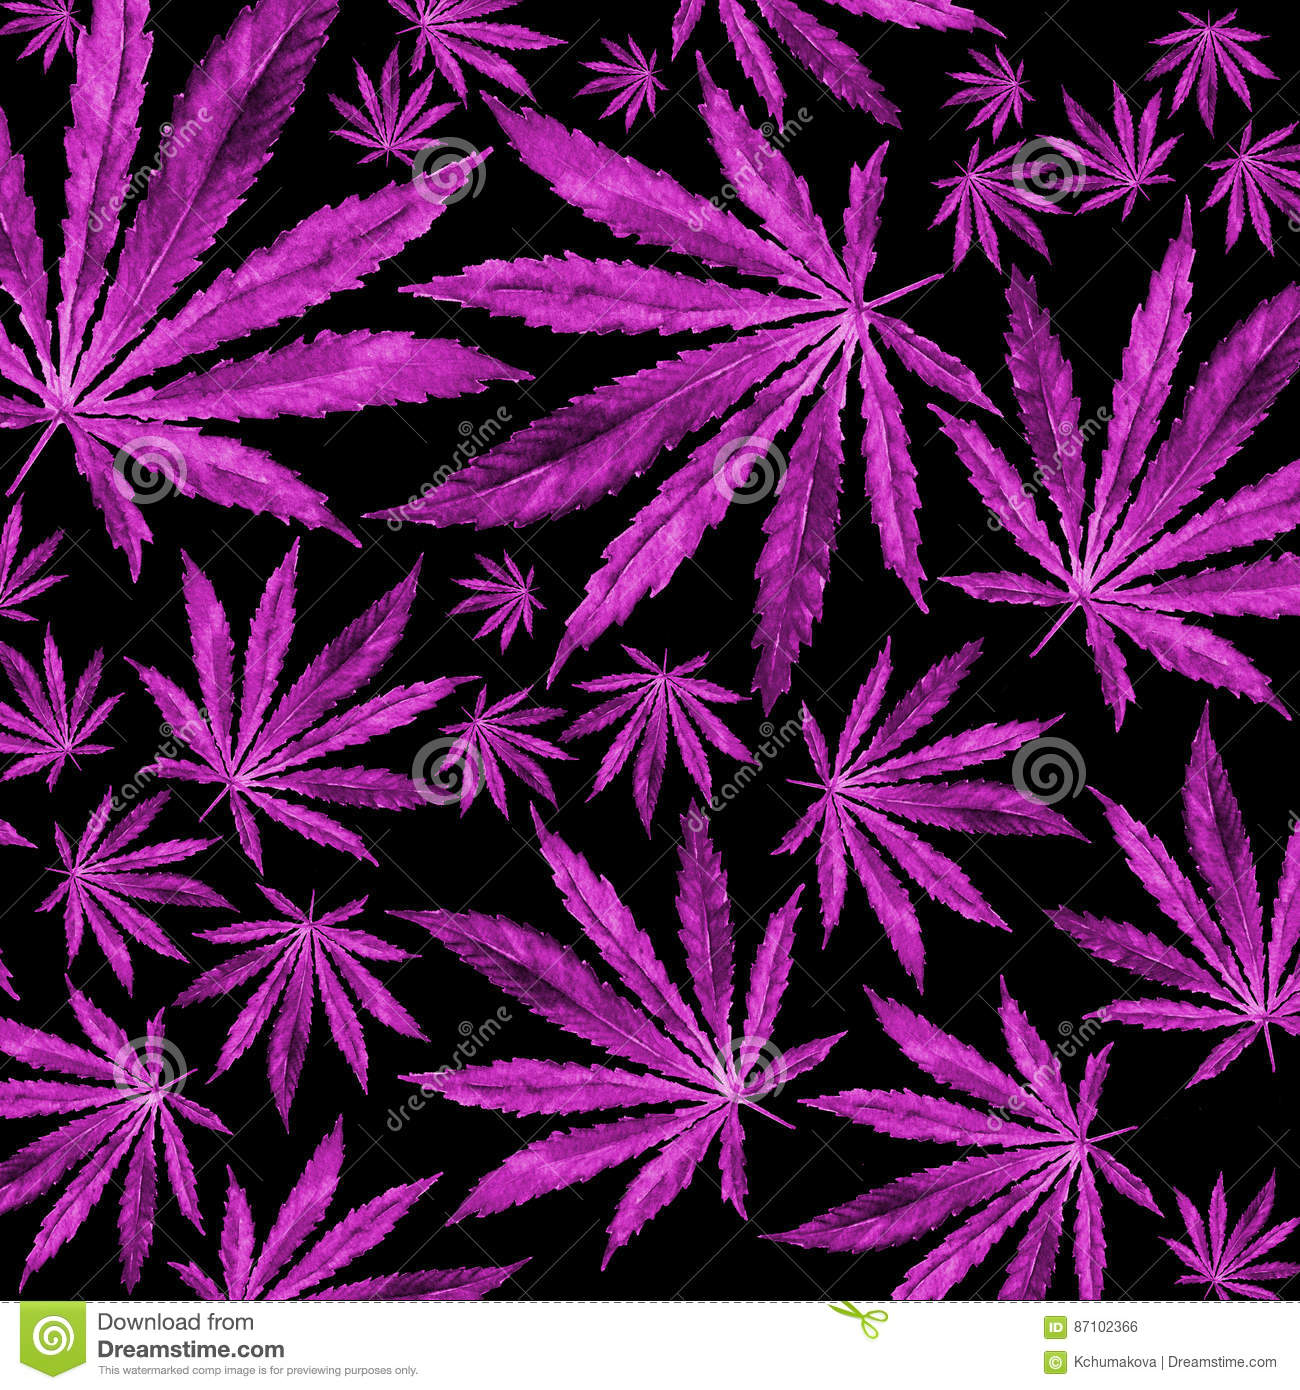 cannabis plant wallpaper black - photo #30